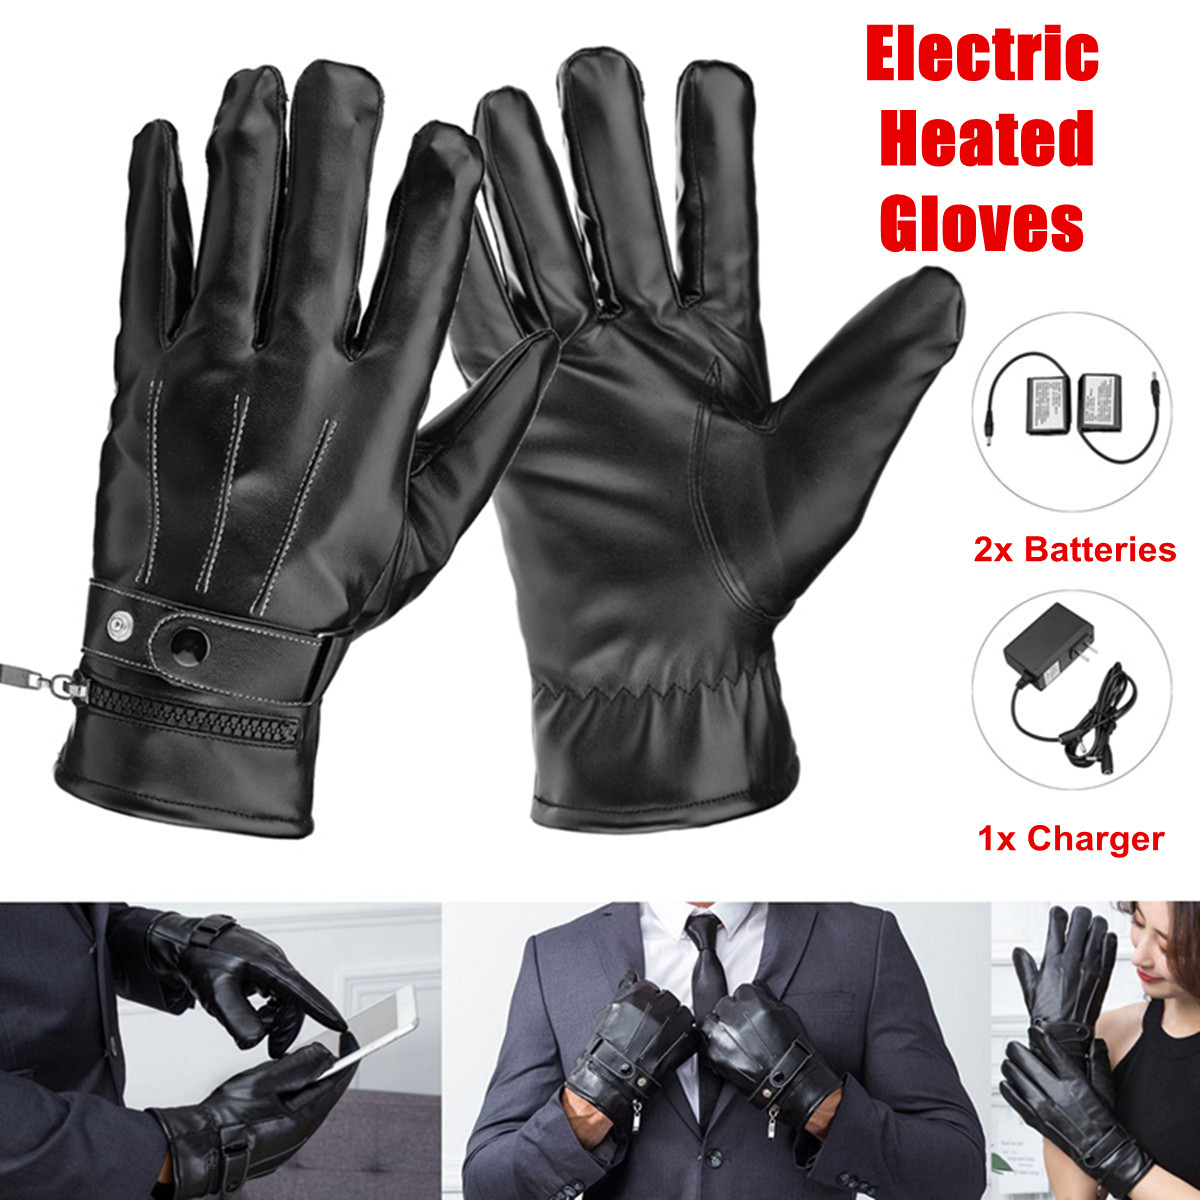 Thermal Electric Heated Gloves Winter Skiing Gloves Unisex Black Bicycle Motorcycle Hands Warmer Rechargeable Battery 1 Pair